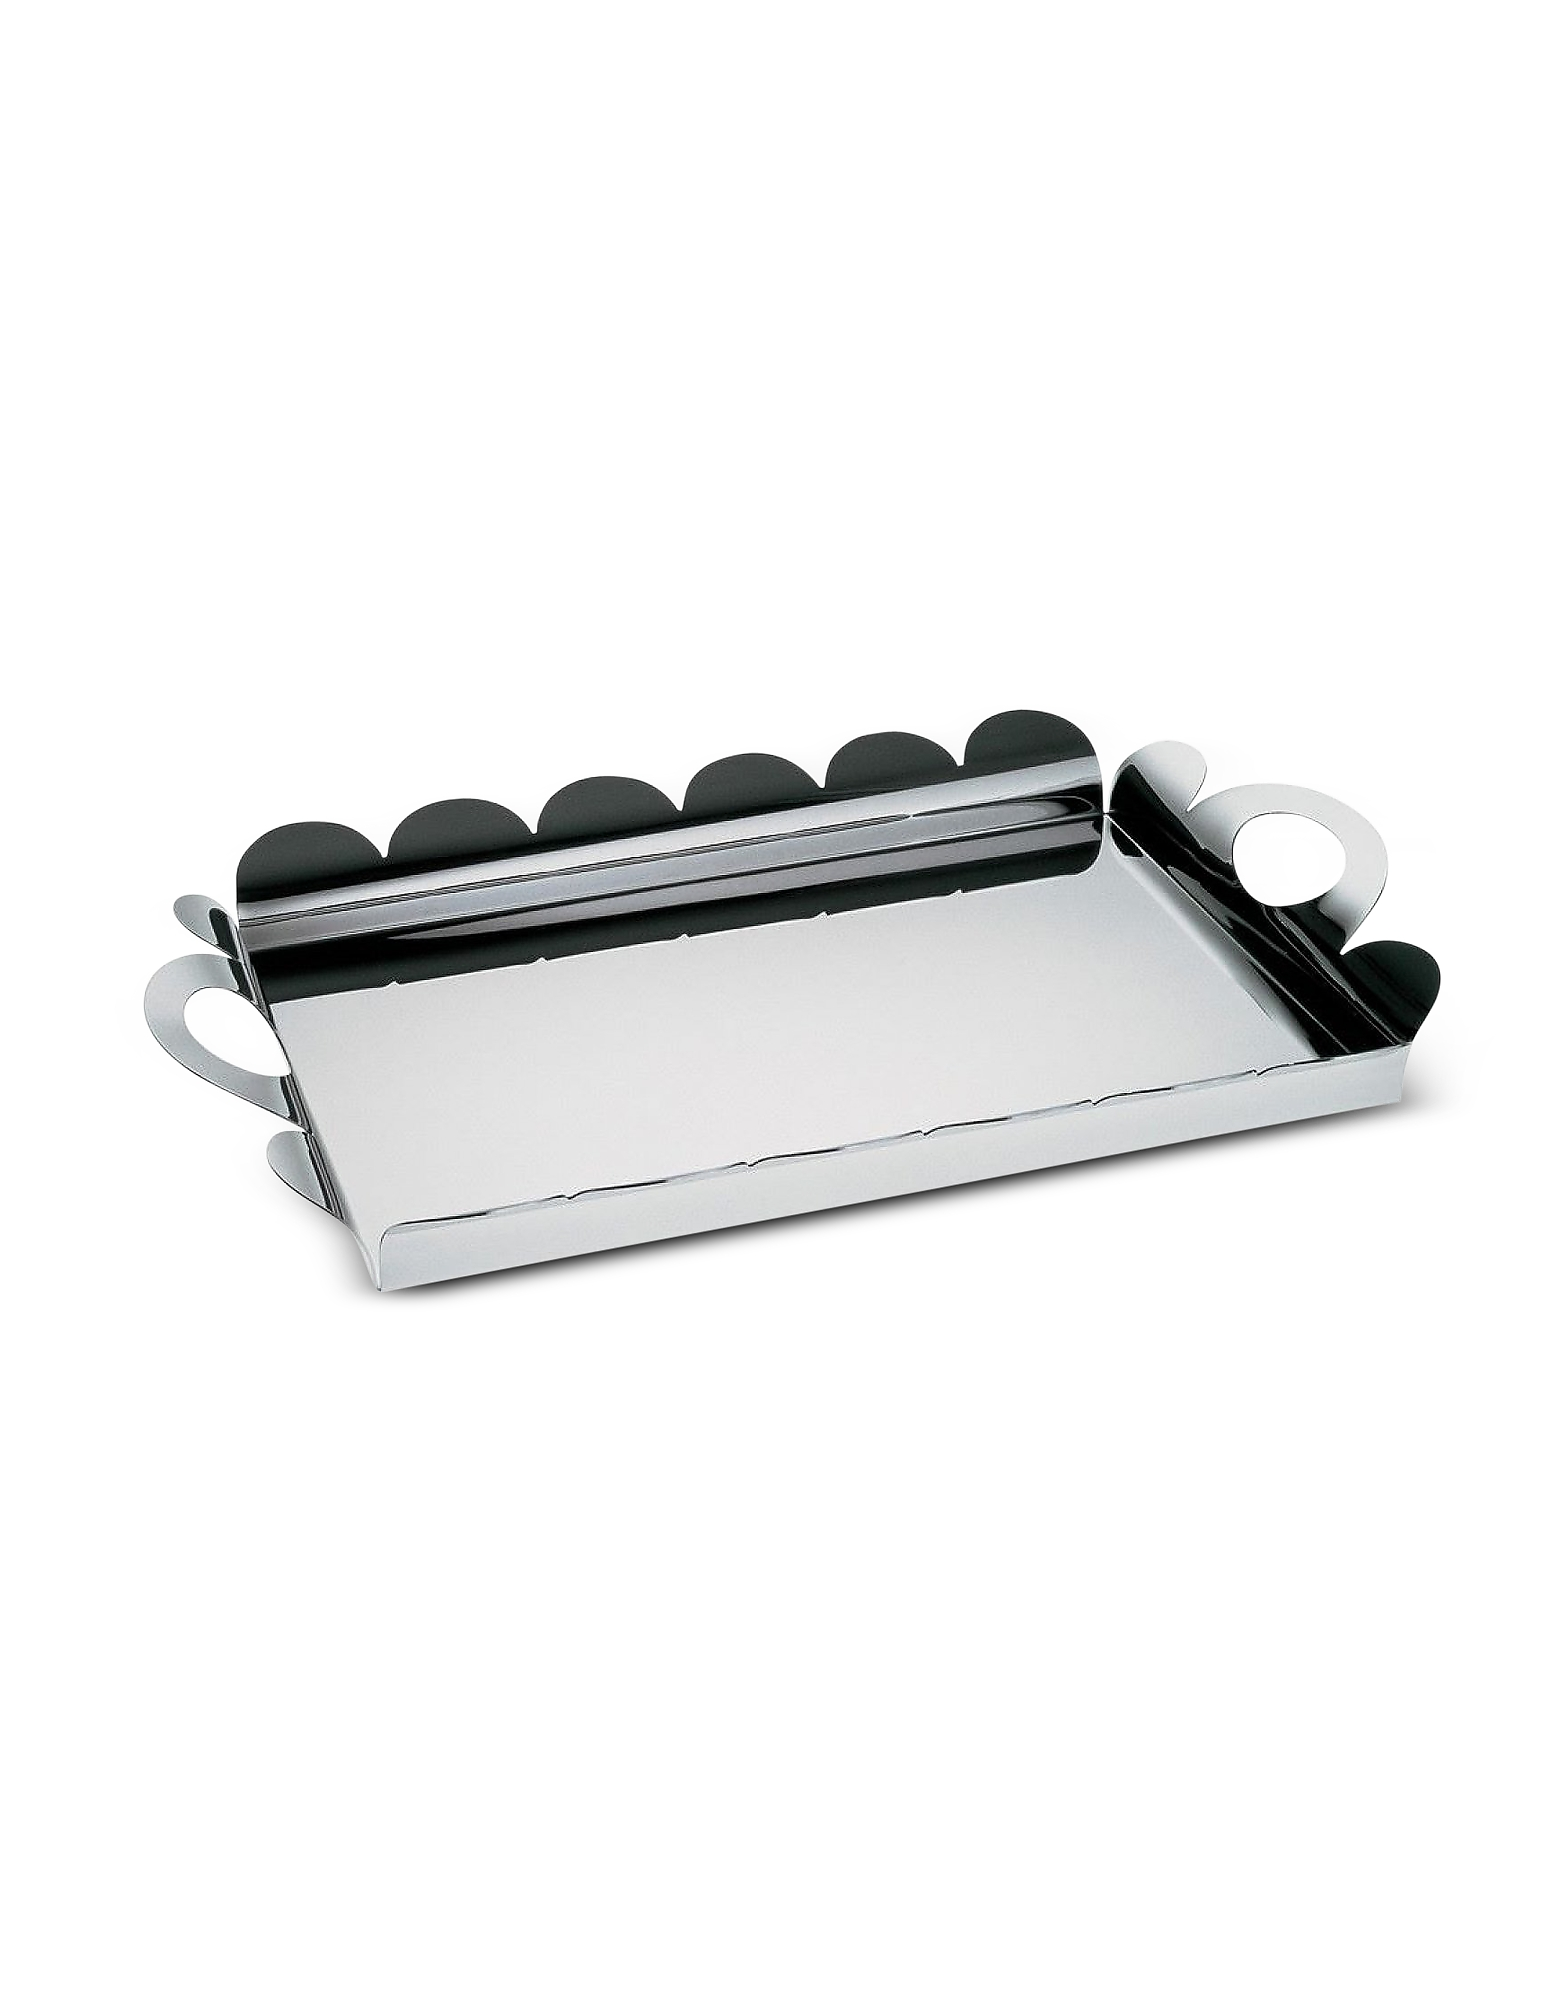 Alessi Designer Kitchen & Dining, Recinto - Rectangular Tray with Handles